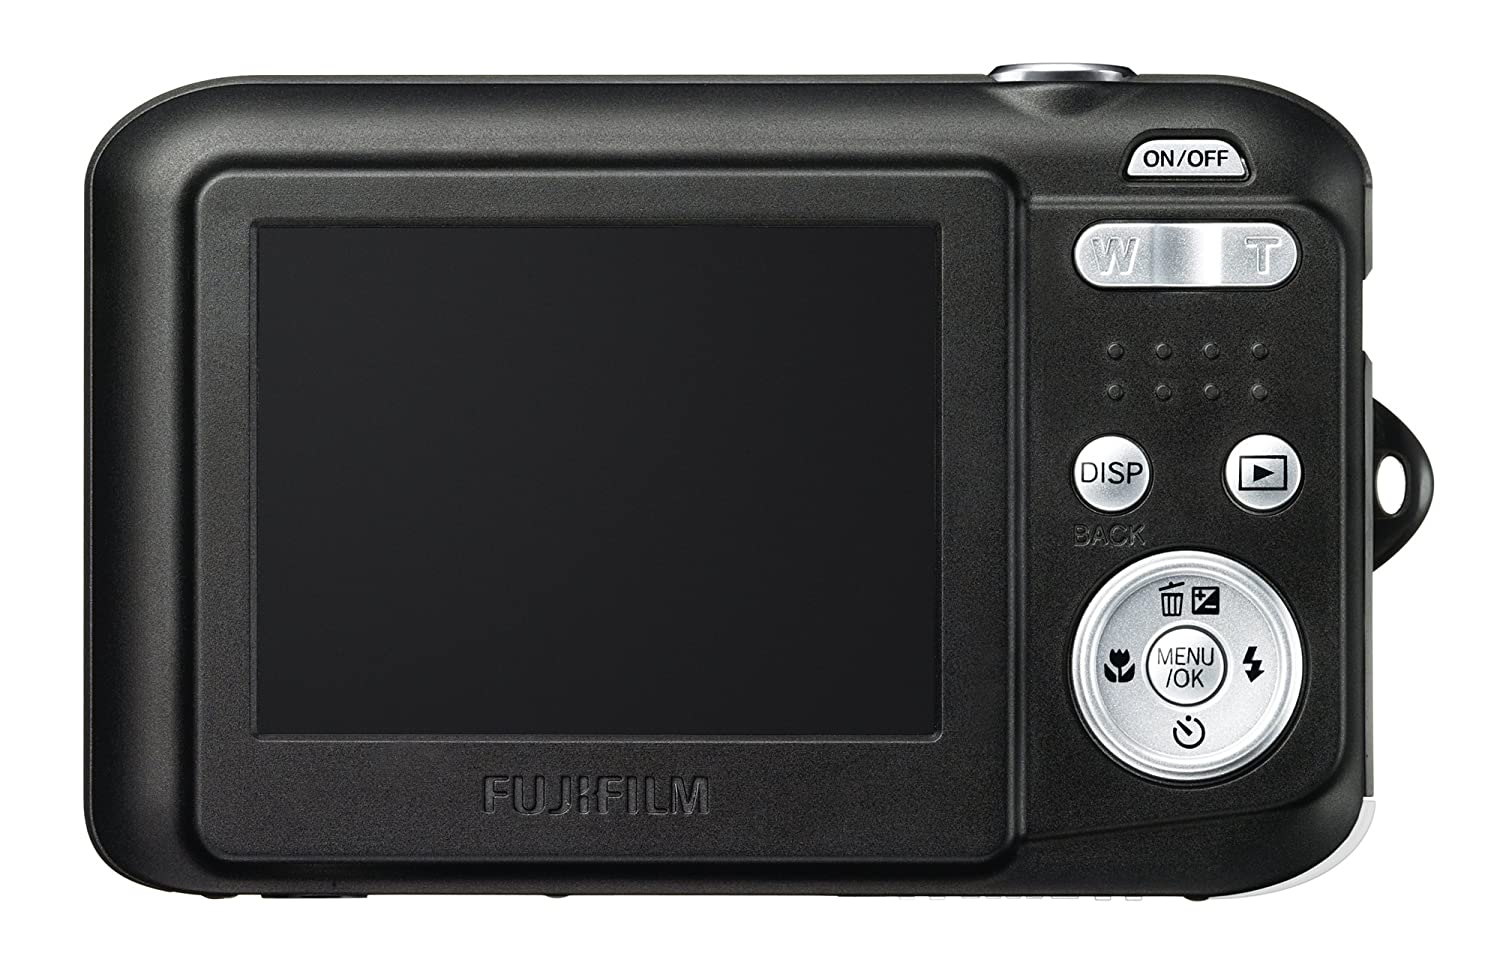 Fujifilm FinePix L55 Digital Camera - White 2.4 inch: Amazon.co.uk: Camera  & Photo